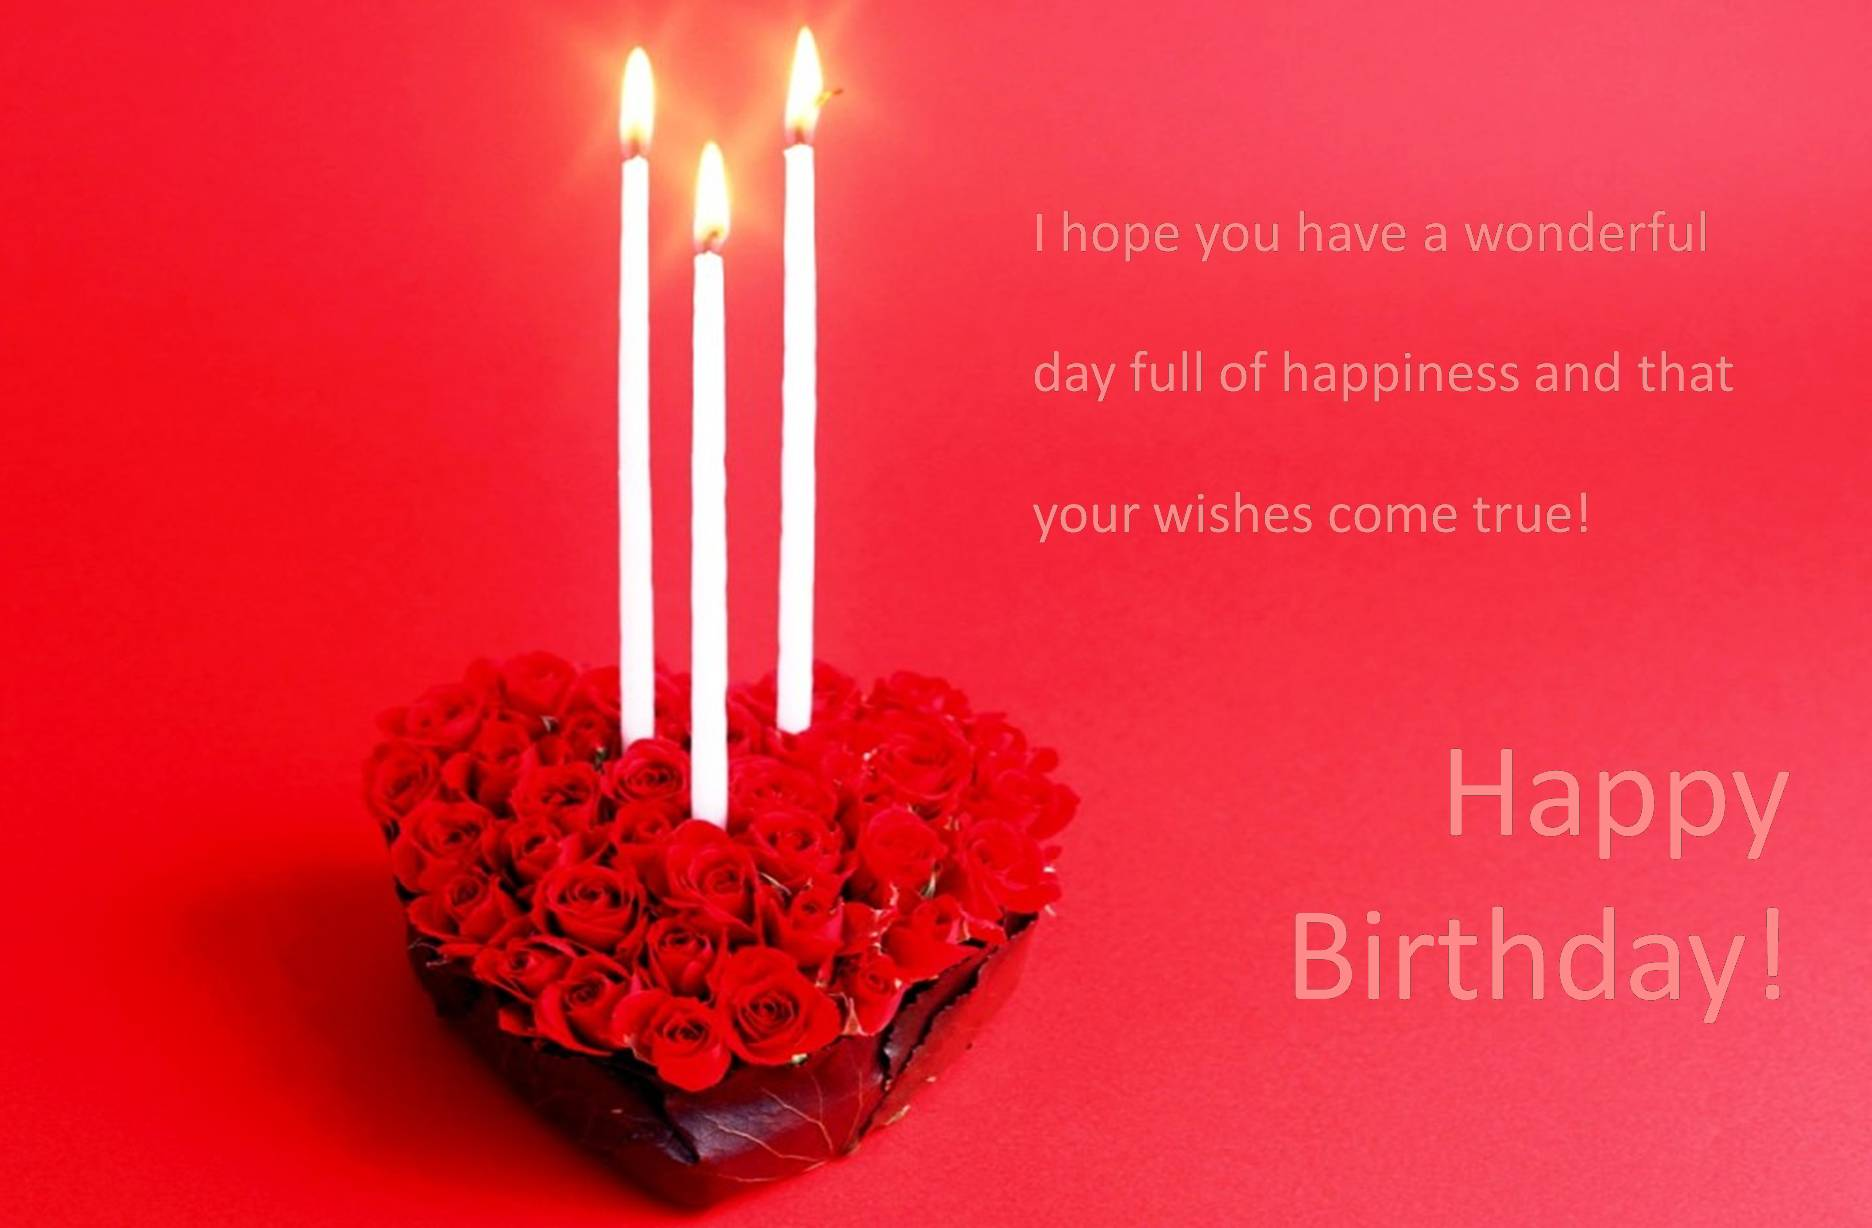 Happy Birthday Birthday quotes download Birthday greeting cards 1872x1228